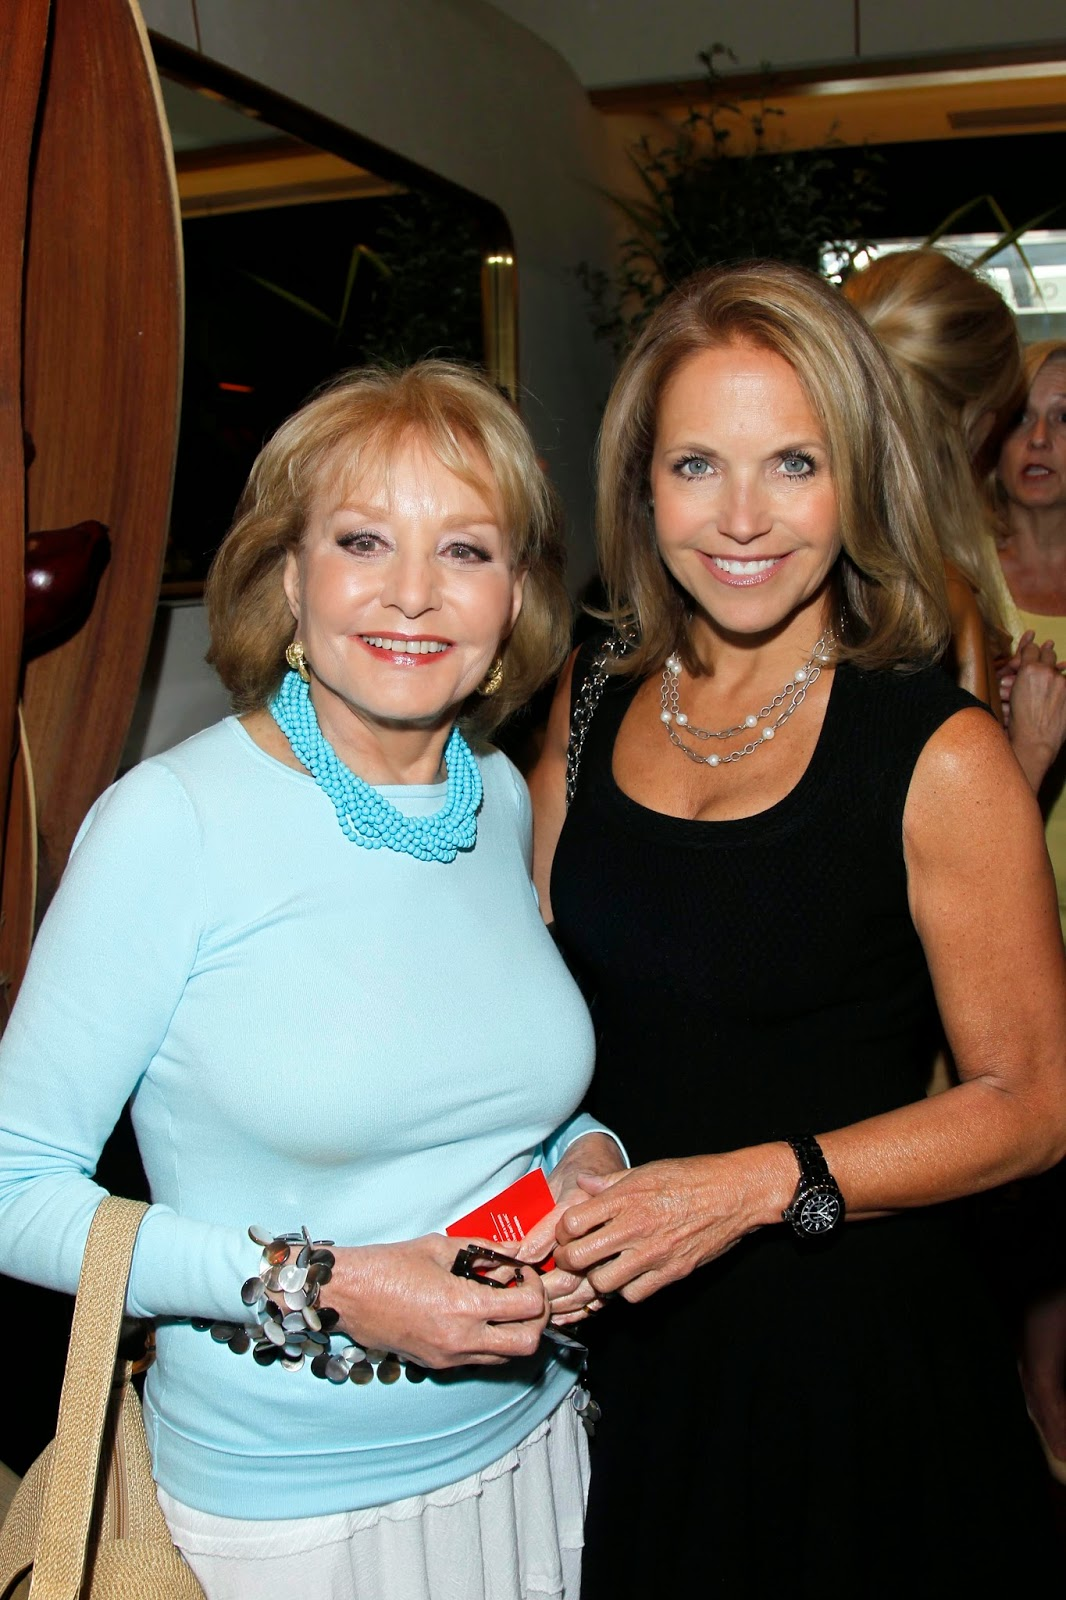 peeing Katie couric